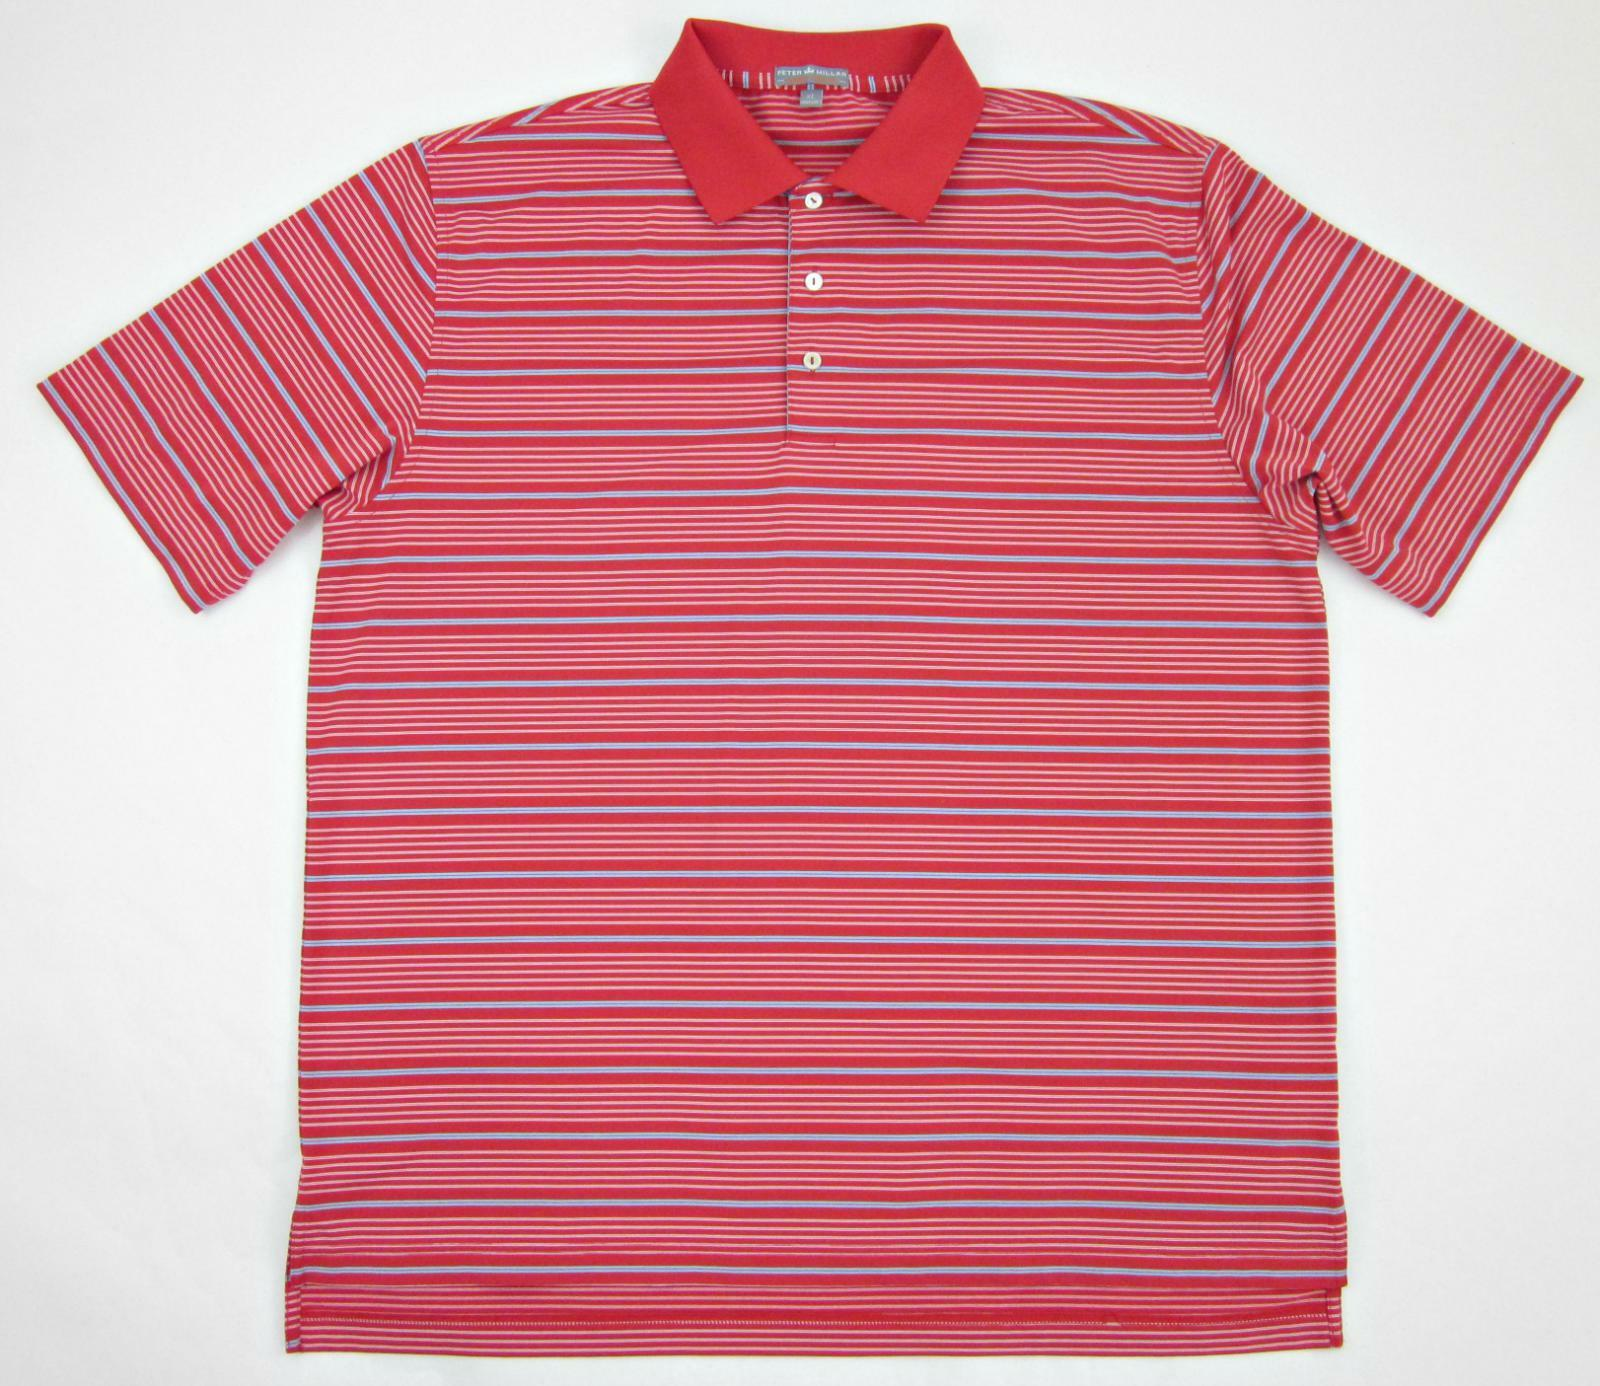 Peter Millar Summer Comfort Staley Stripe Polo Red Wh Steel bluee XL Worn Once